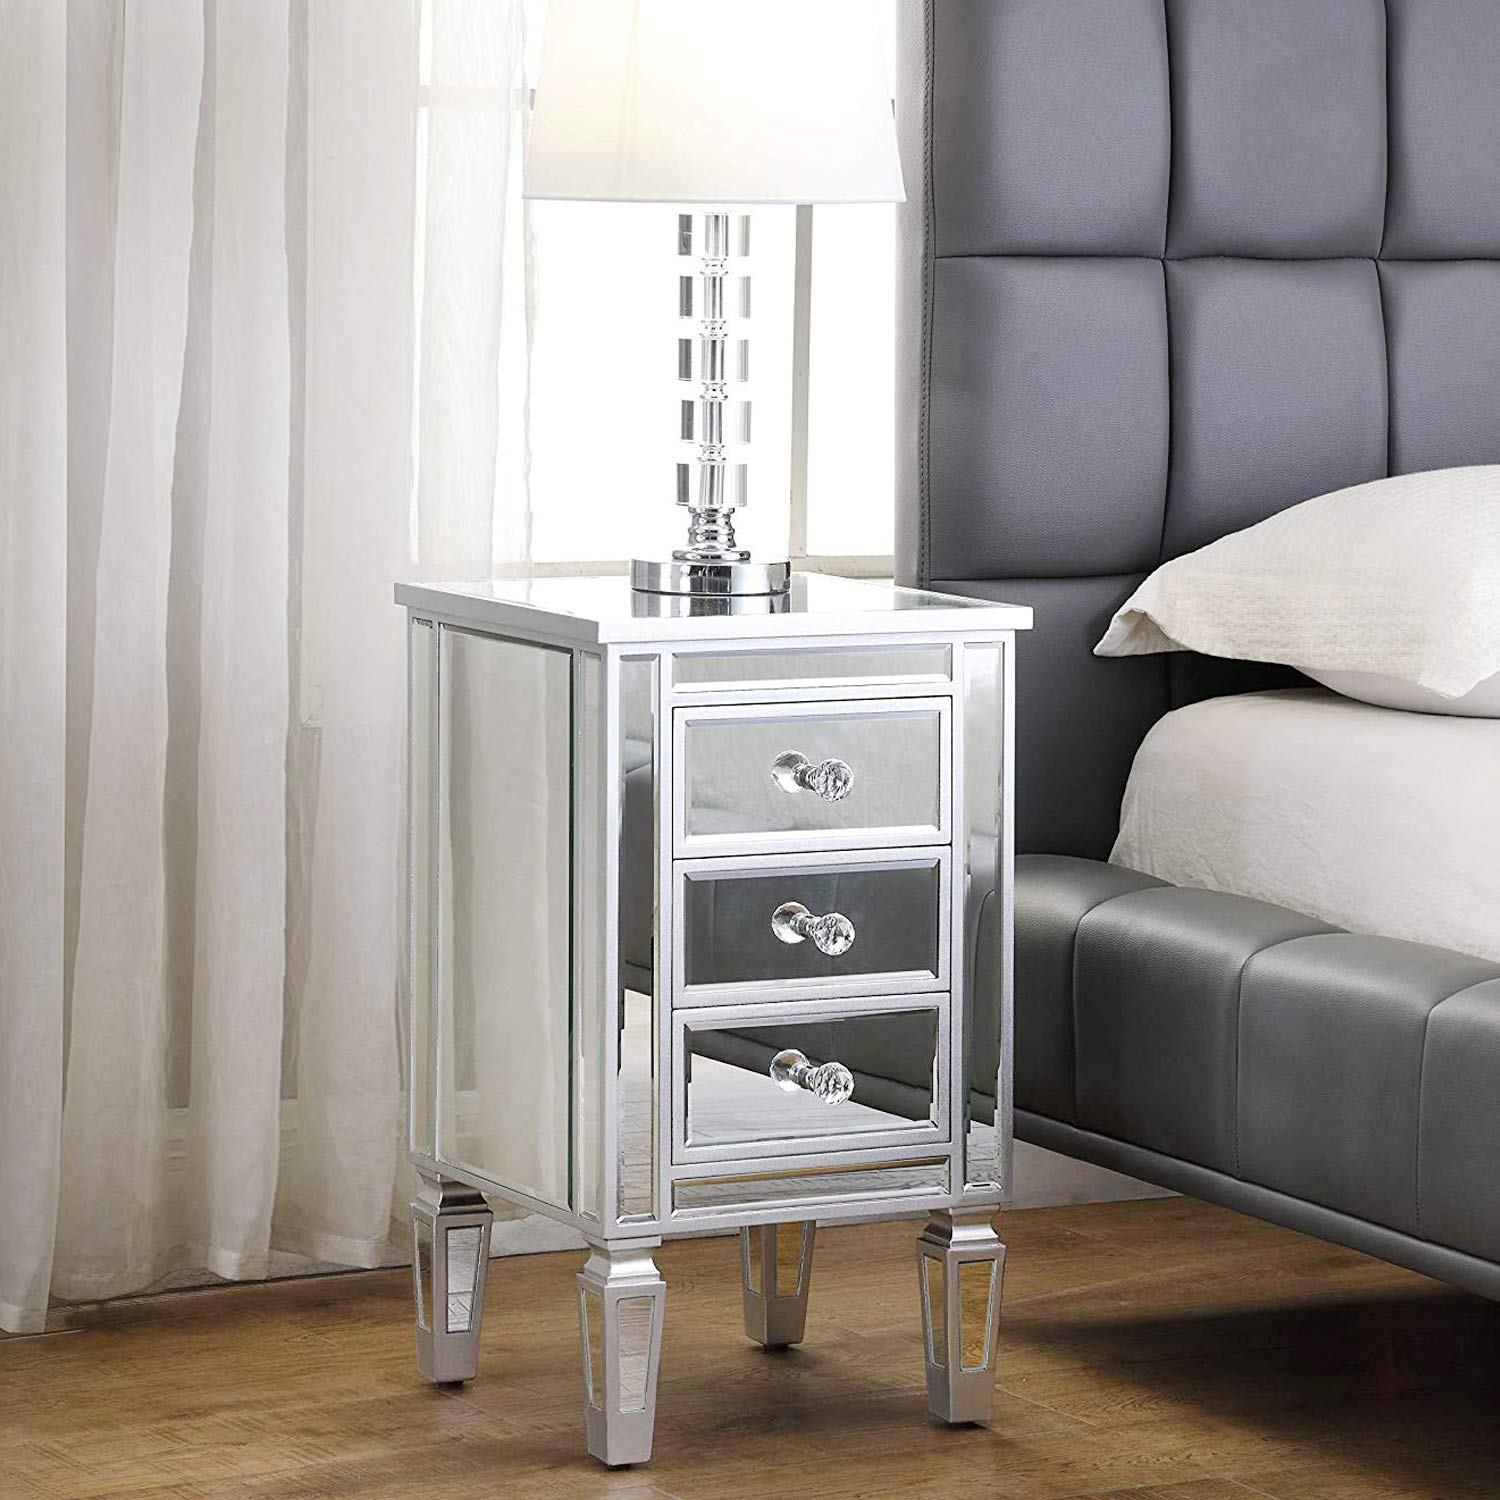 3-Drawer Mirrored End Table - GA Home Mirrored Furniture Nightstand Glass Bedside Table, Silver